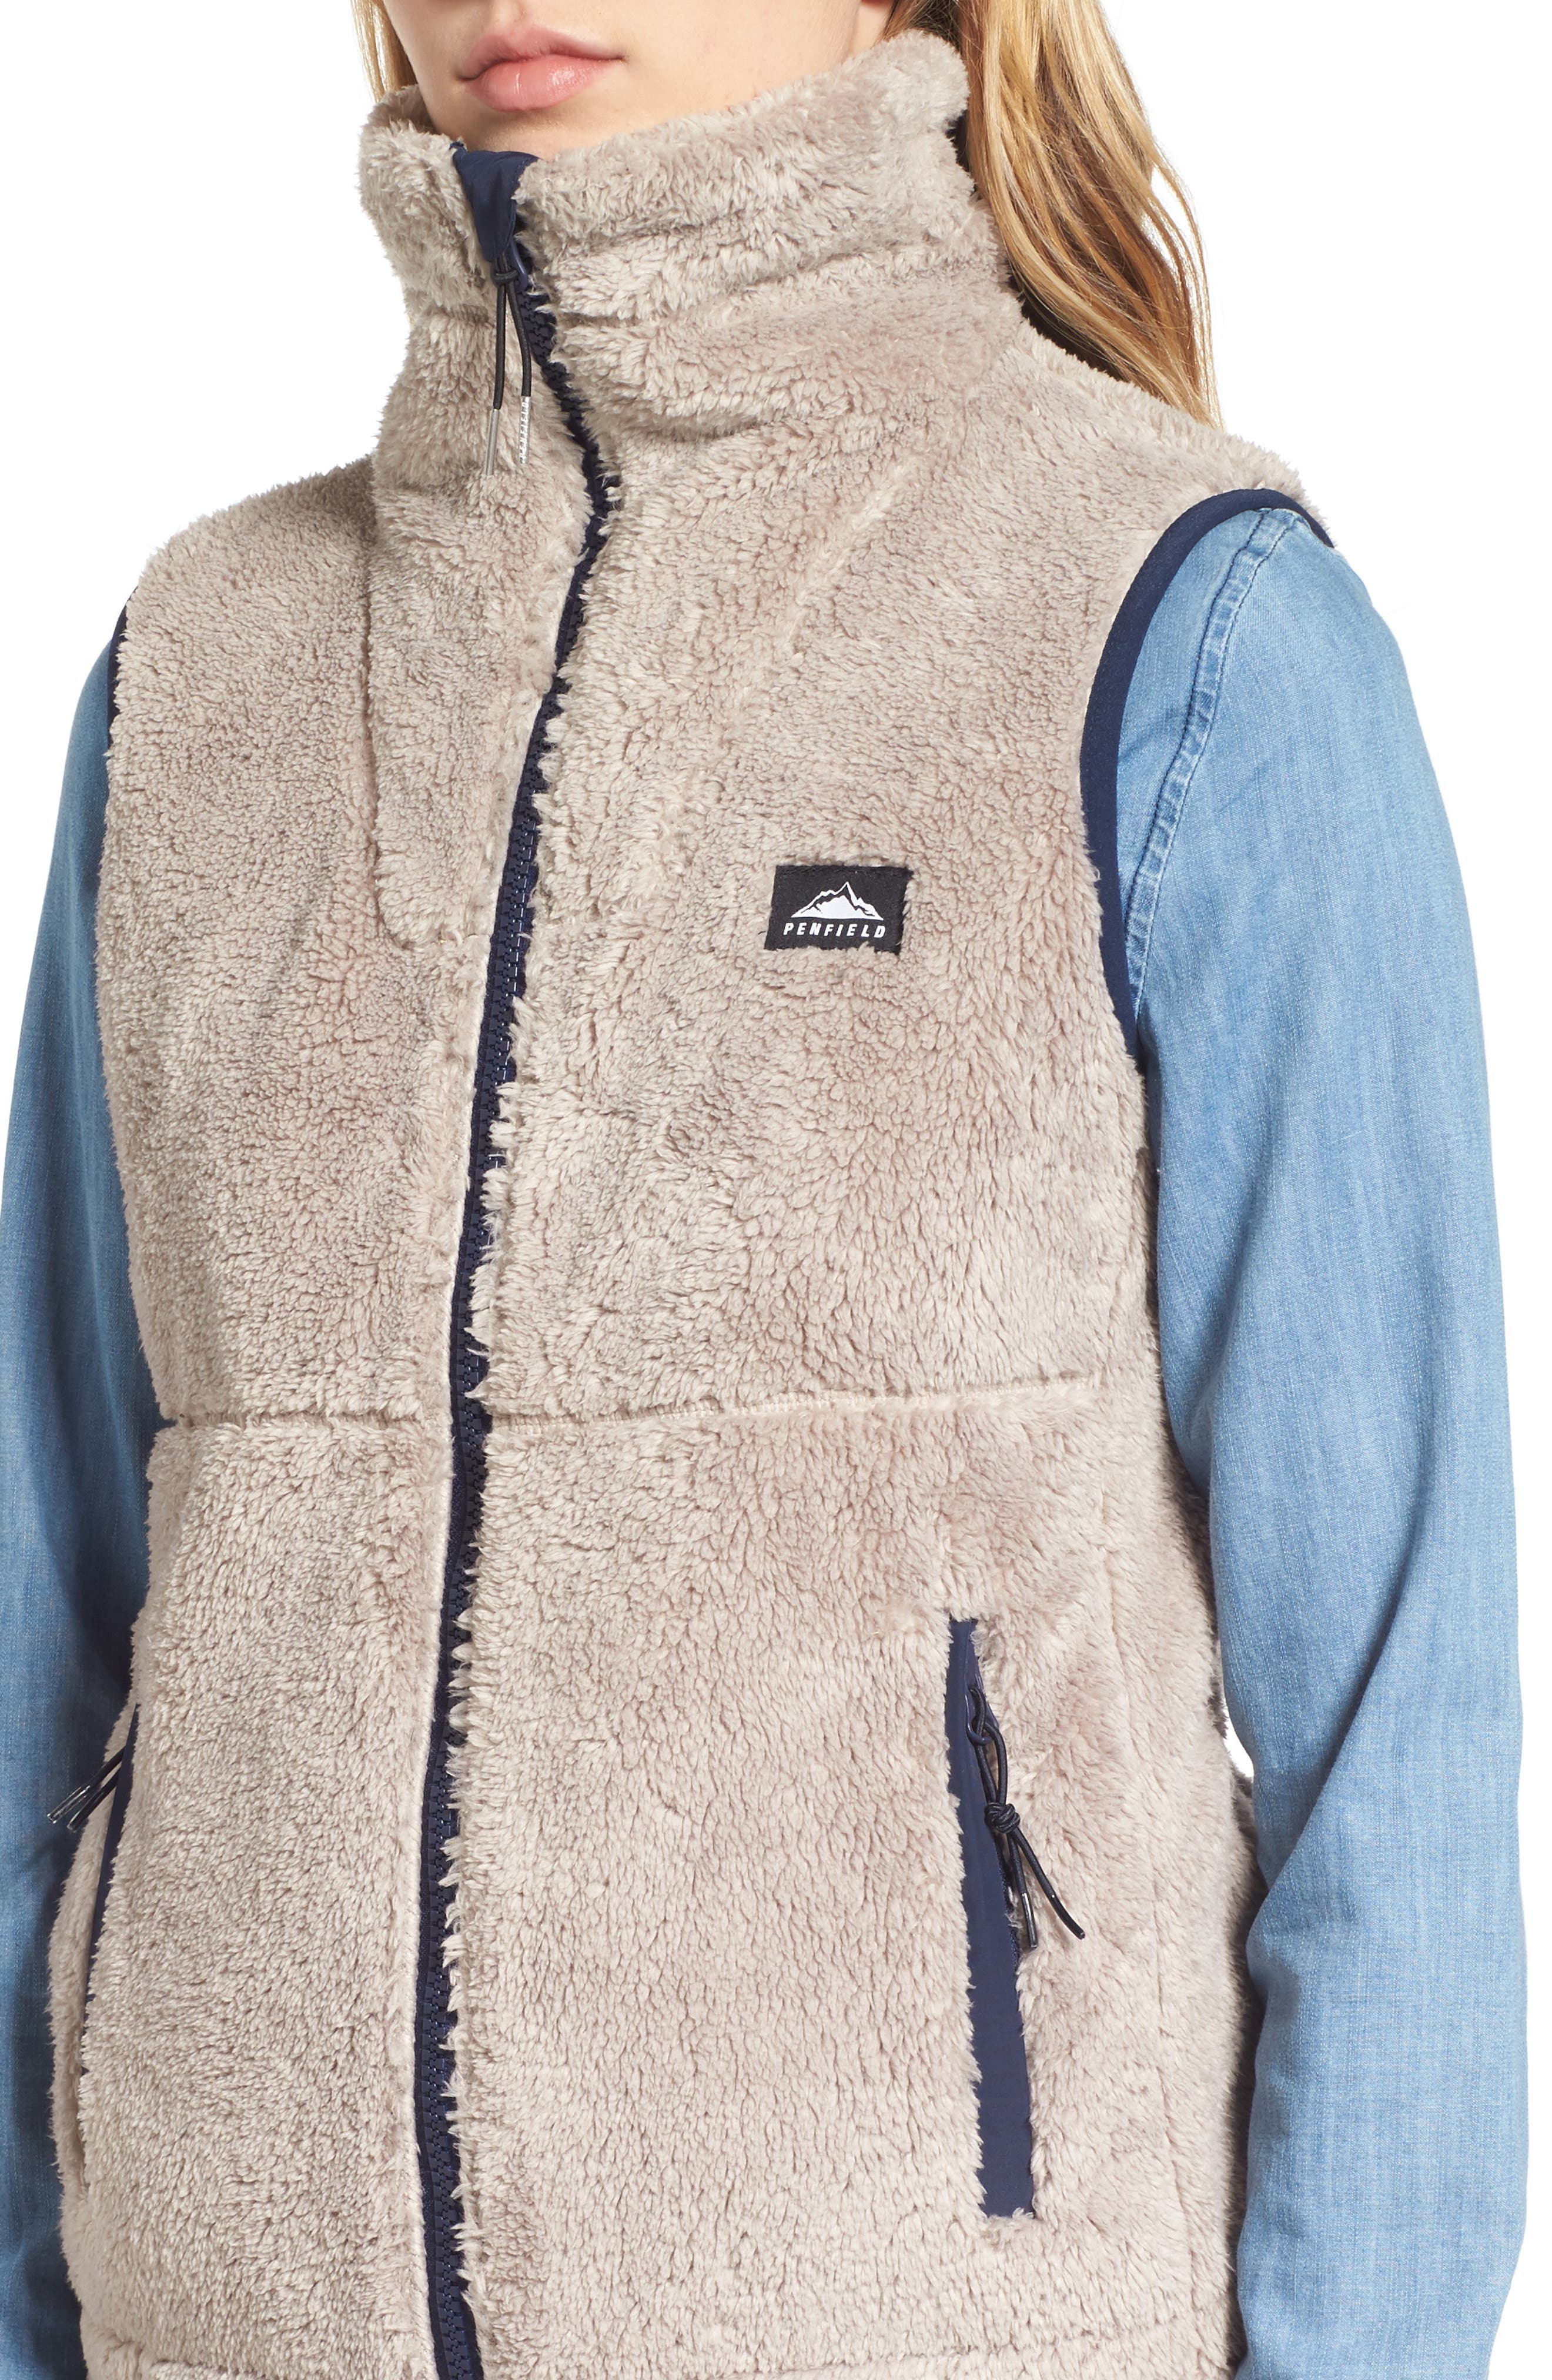 Fleece Vest,                             Alternate thumbnail 4, color,                             252